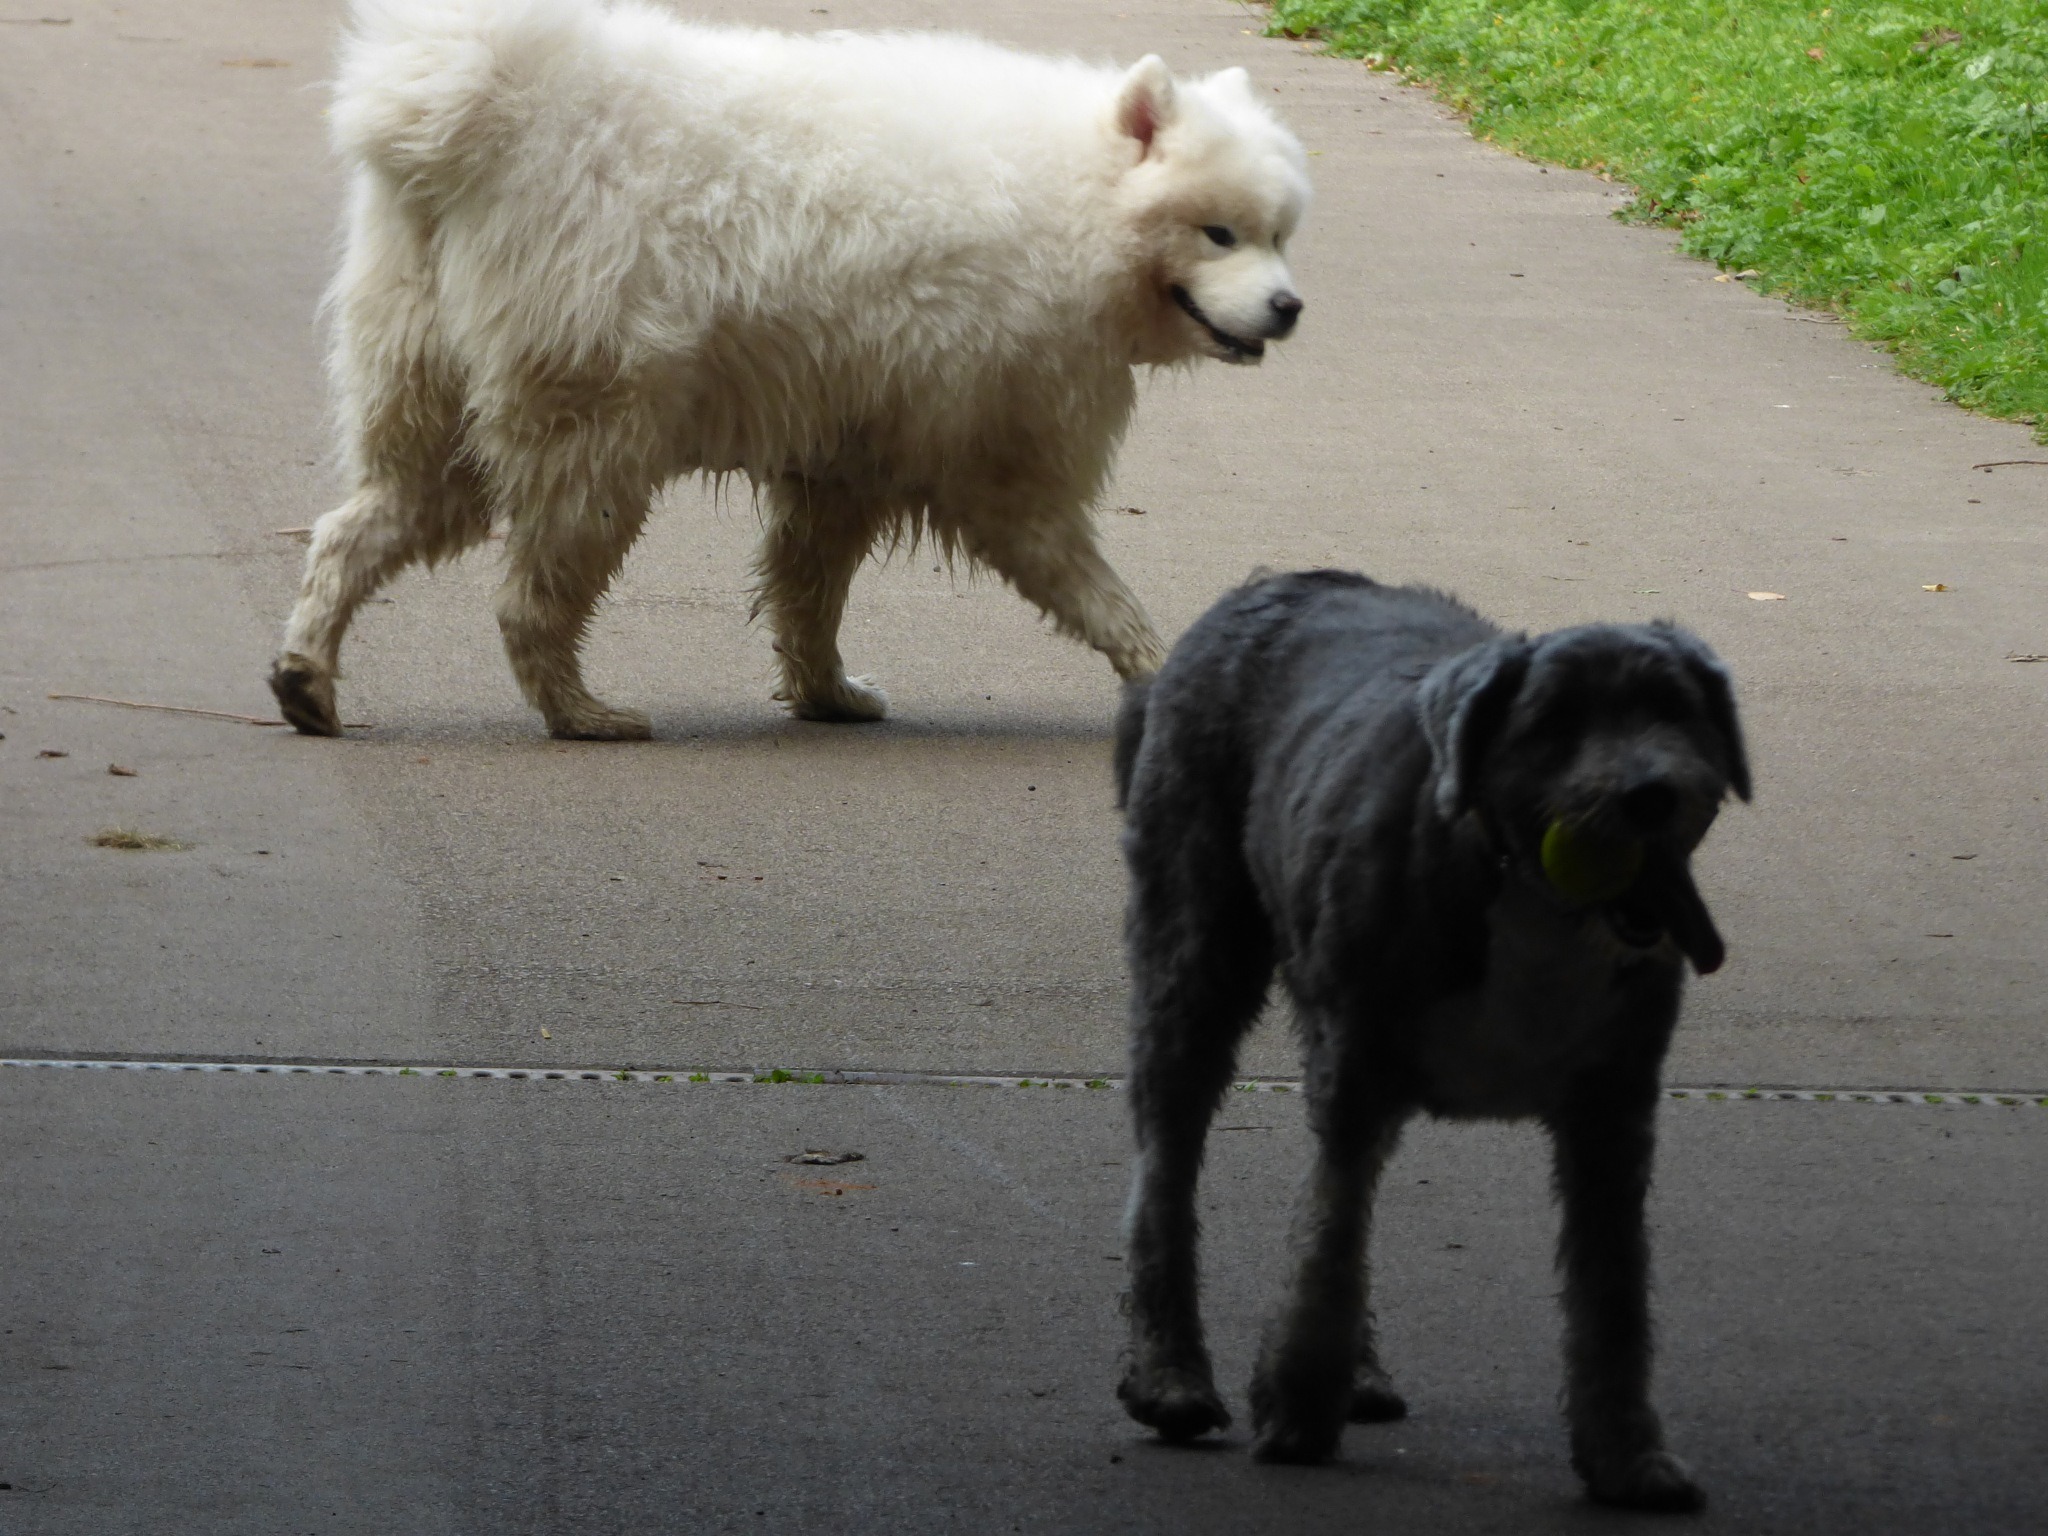 Molly and Knut by Two Dogs Fightin'